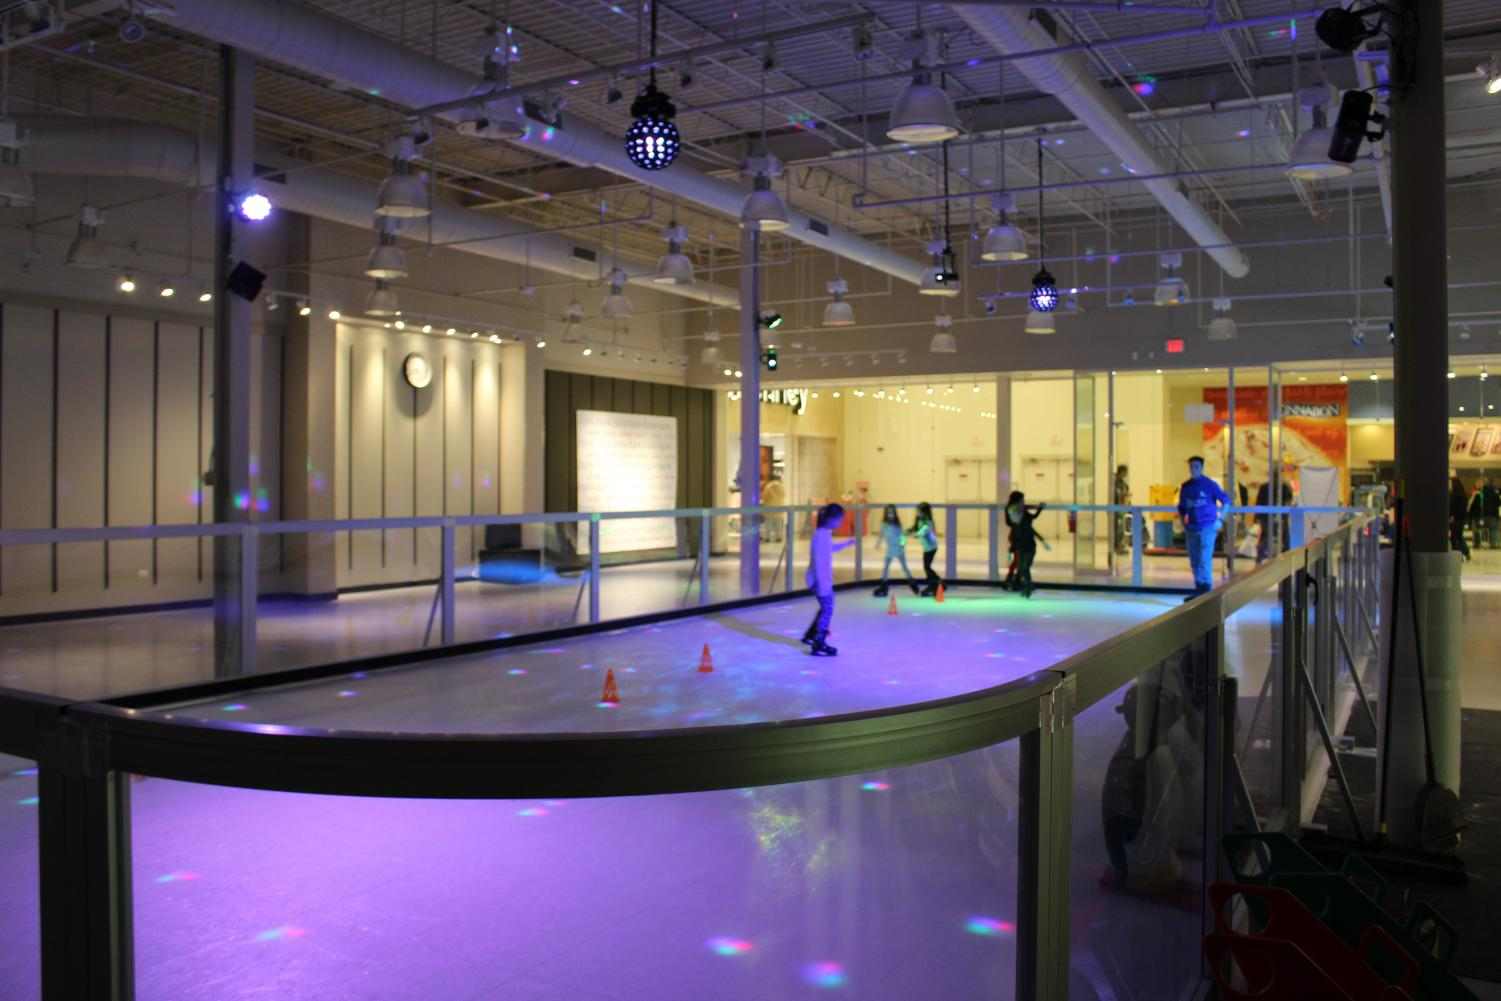 The Skate Room, which opened in mid-November, is a synthetic ice rink whose owners wanted a place for families and friends to get physical activity while enjoying a social environment.